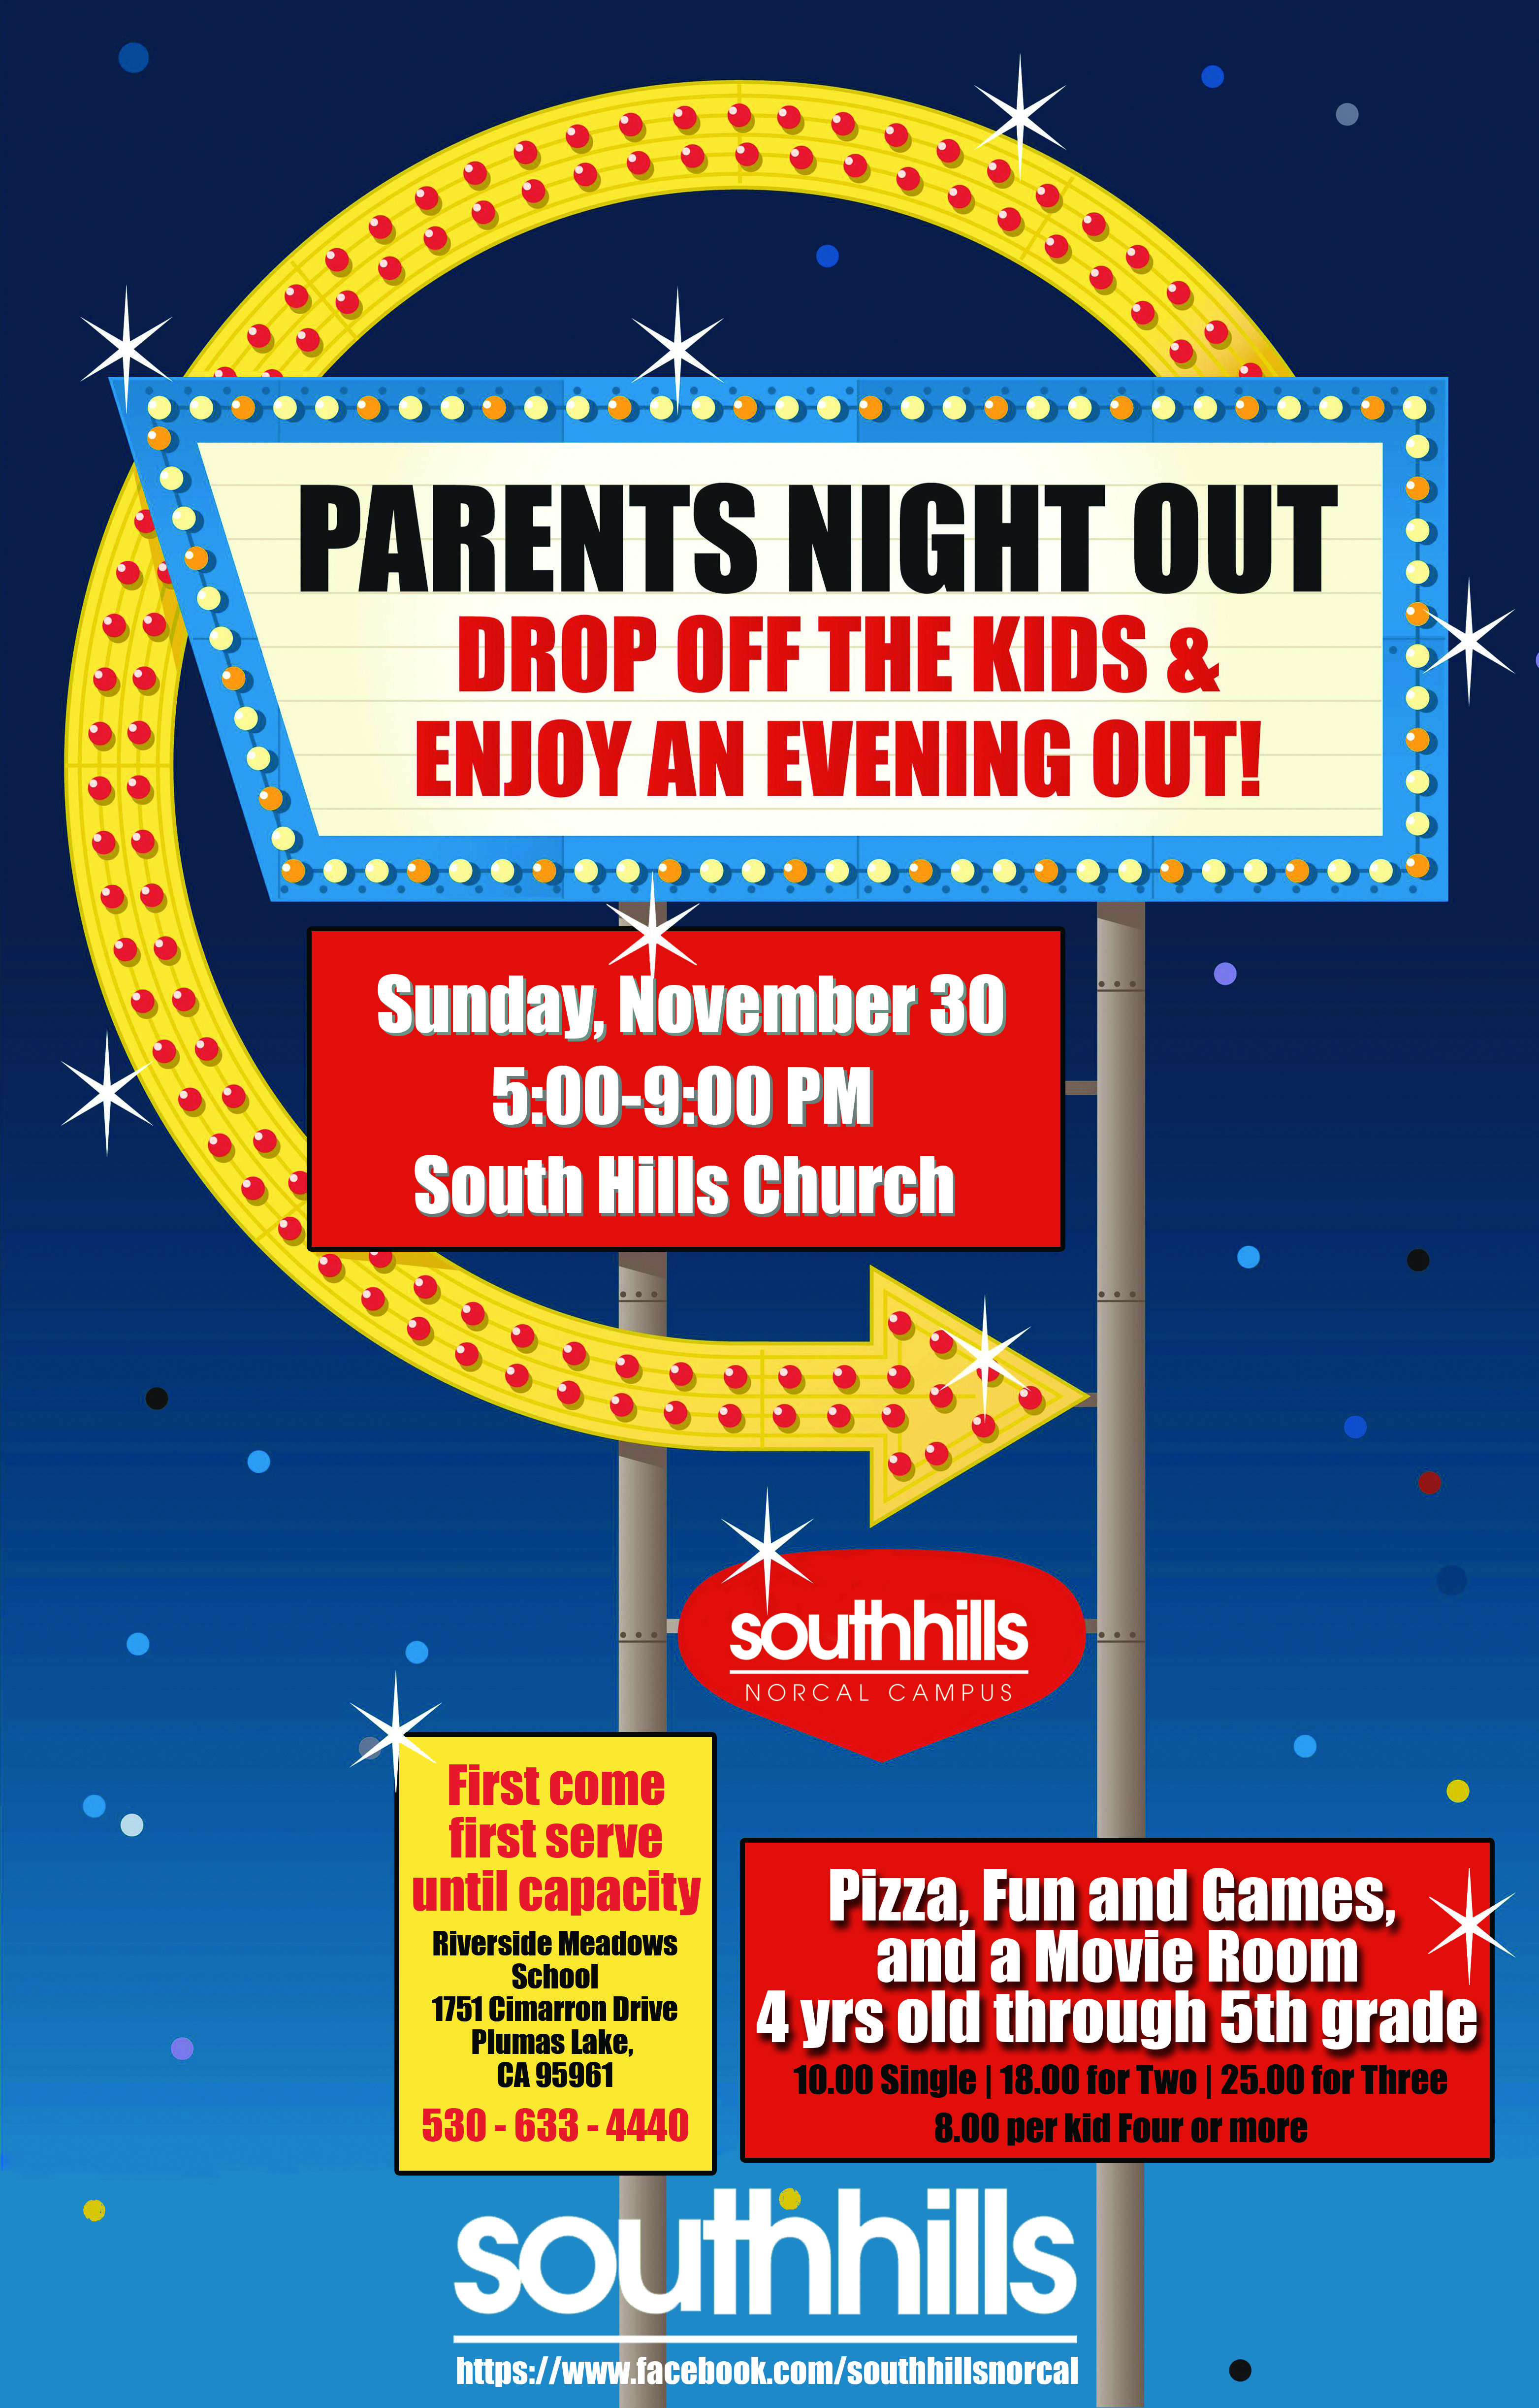 parents night out colourful flyer poster flyers ideas about school fundraisers fundraisers